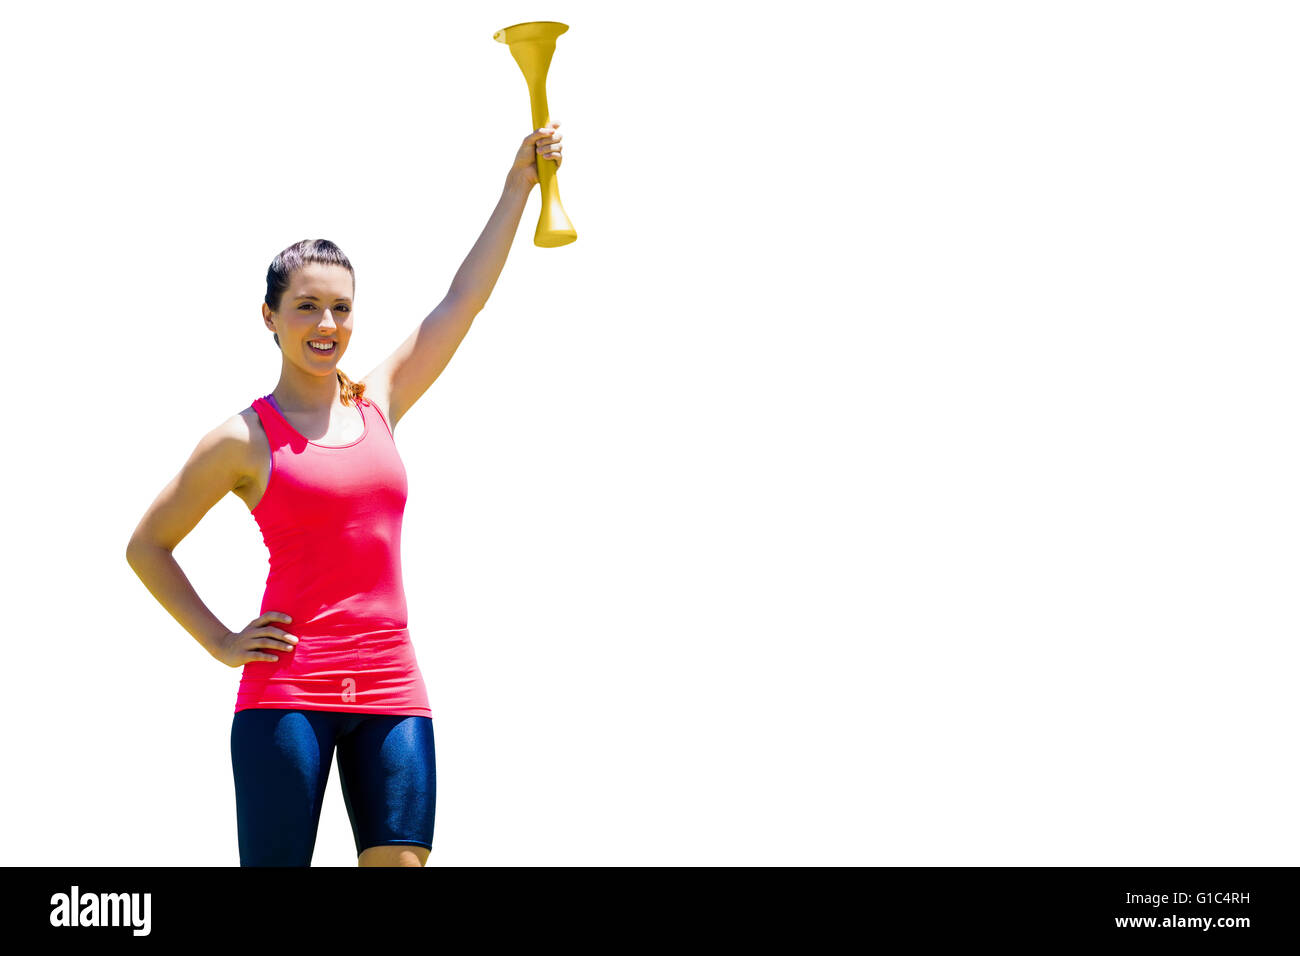 Sporty woman posing and smiling with Olympic torch - Stock Image